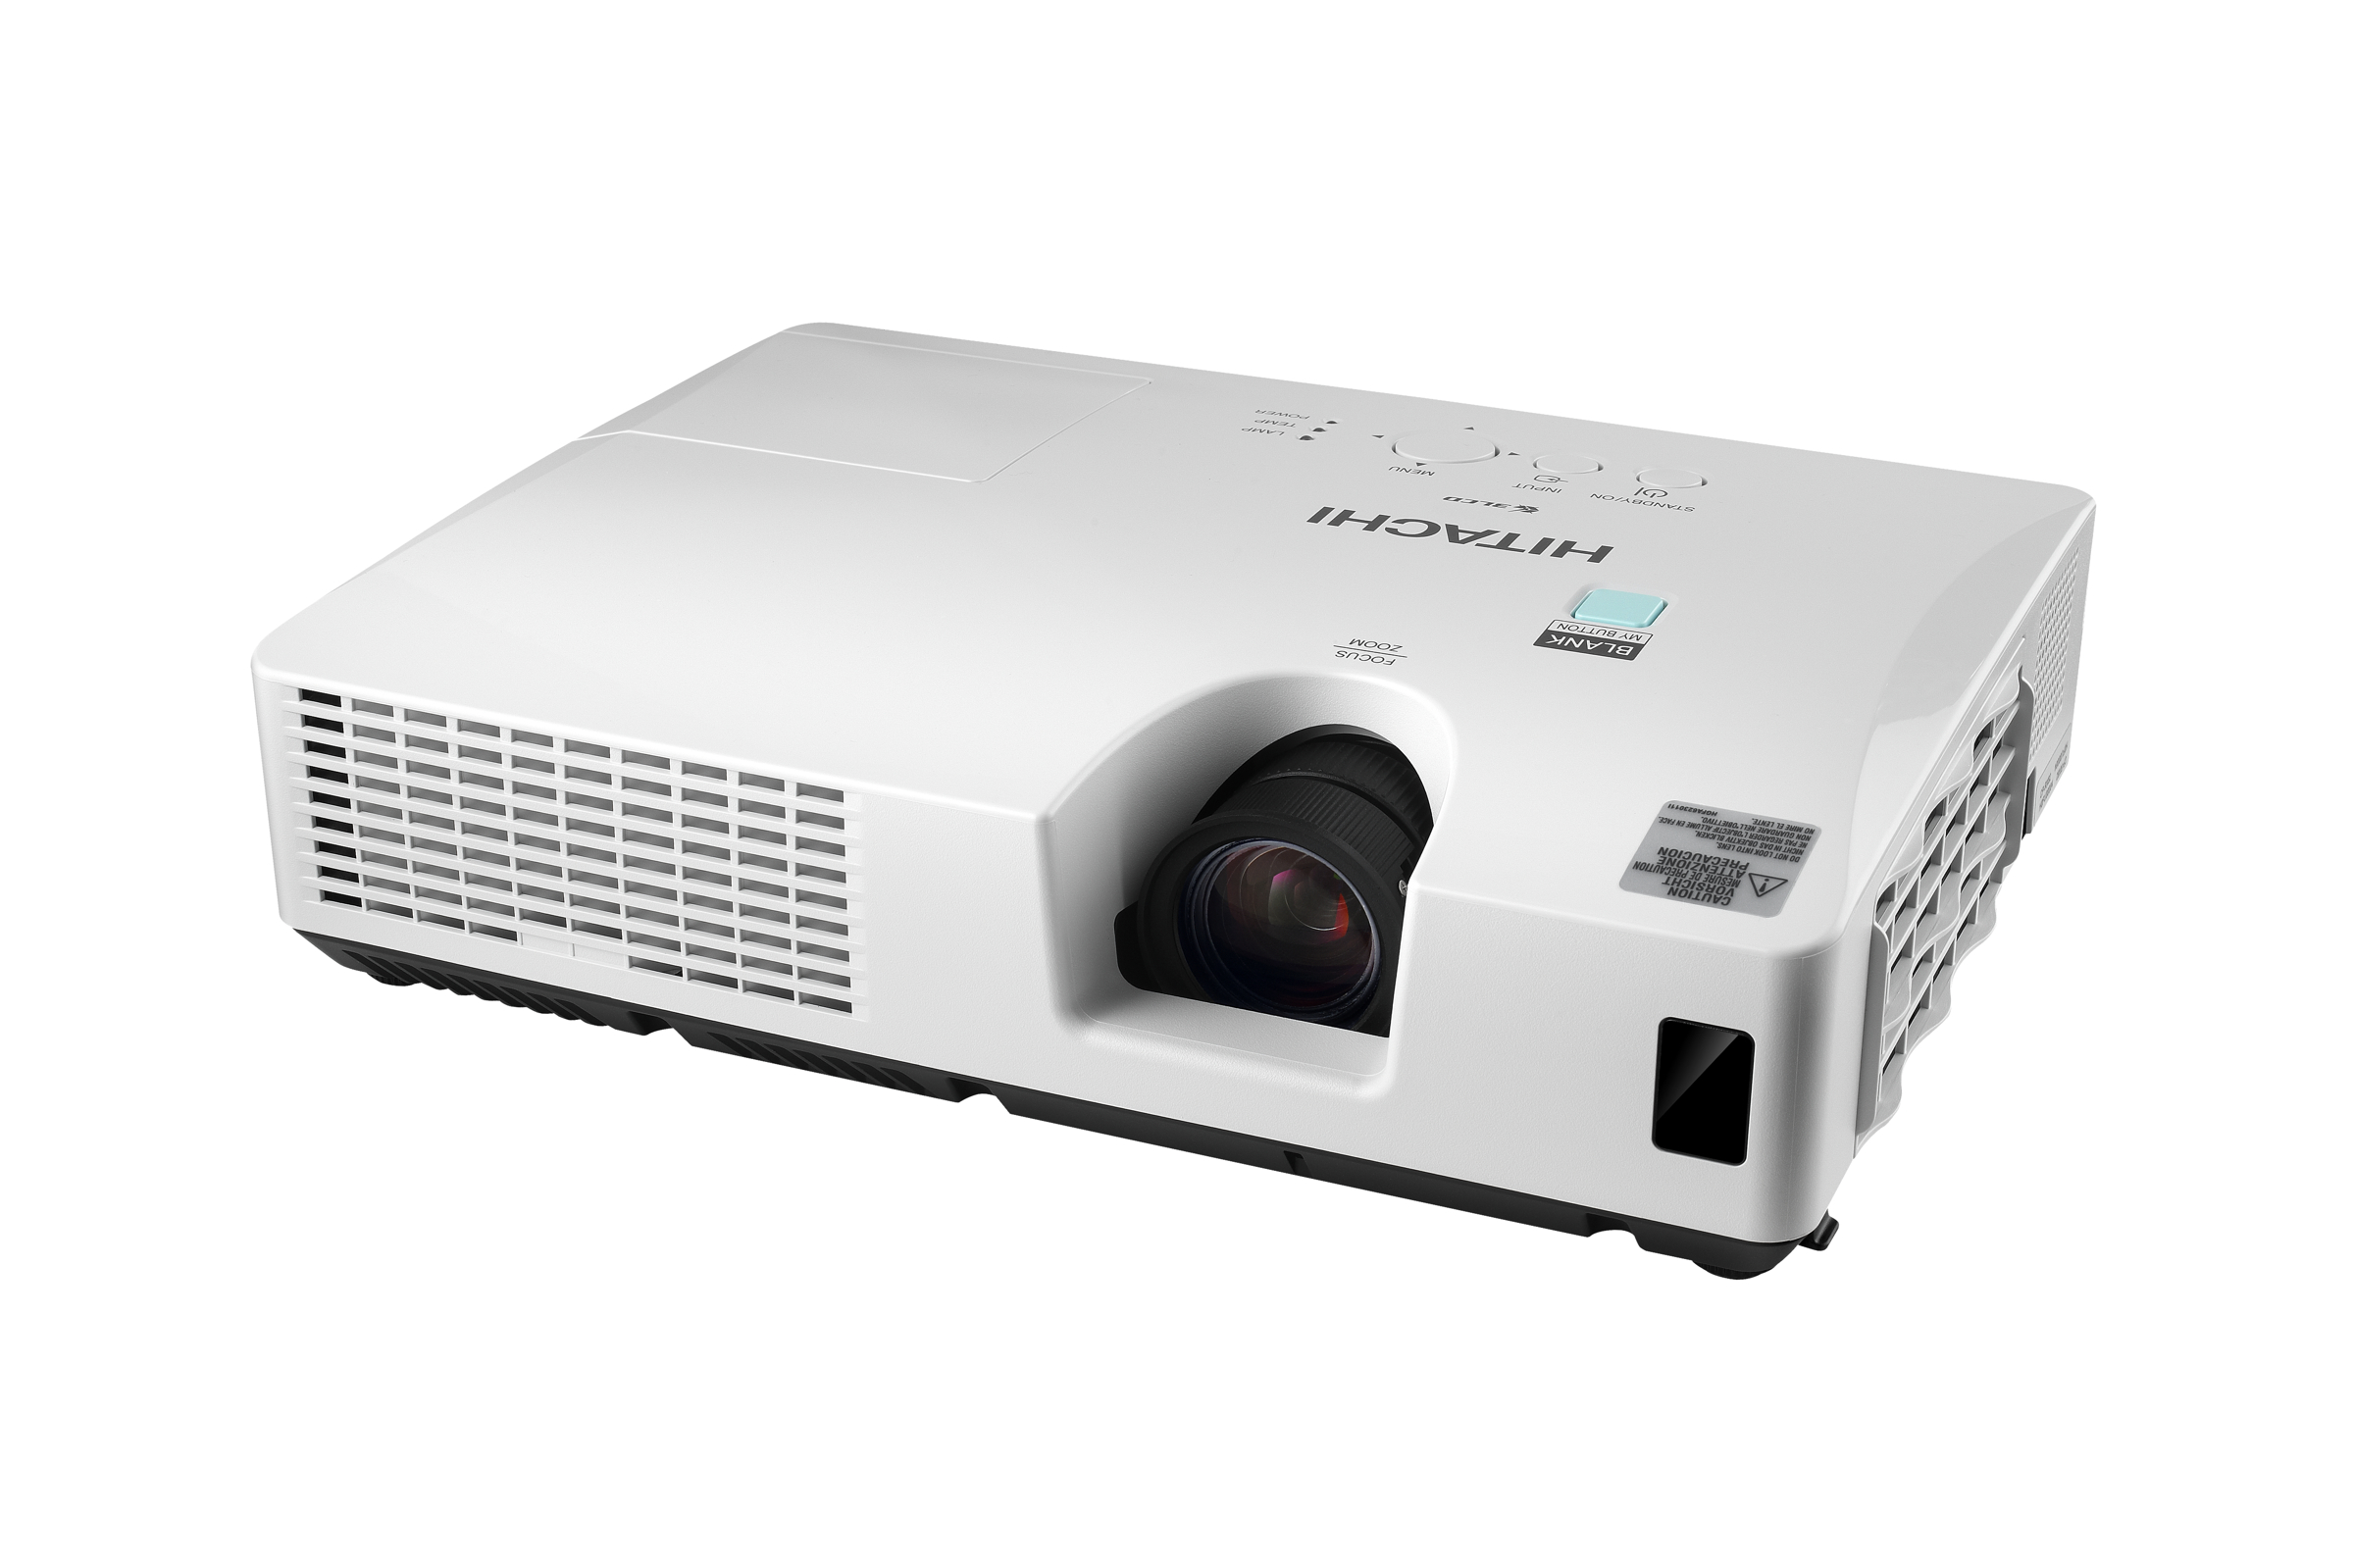 Hitachi+Introduces+Compact+CPX8+3LCD+Projector